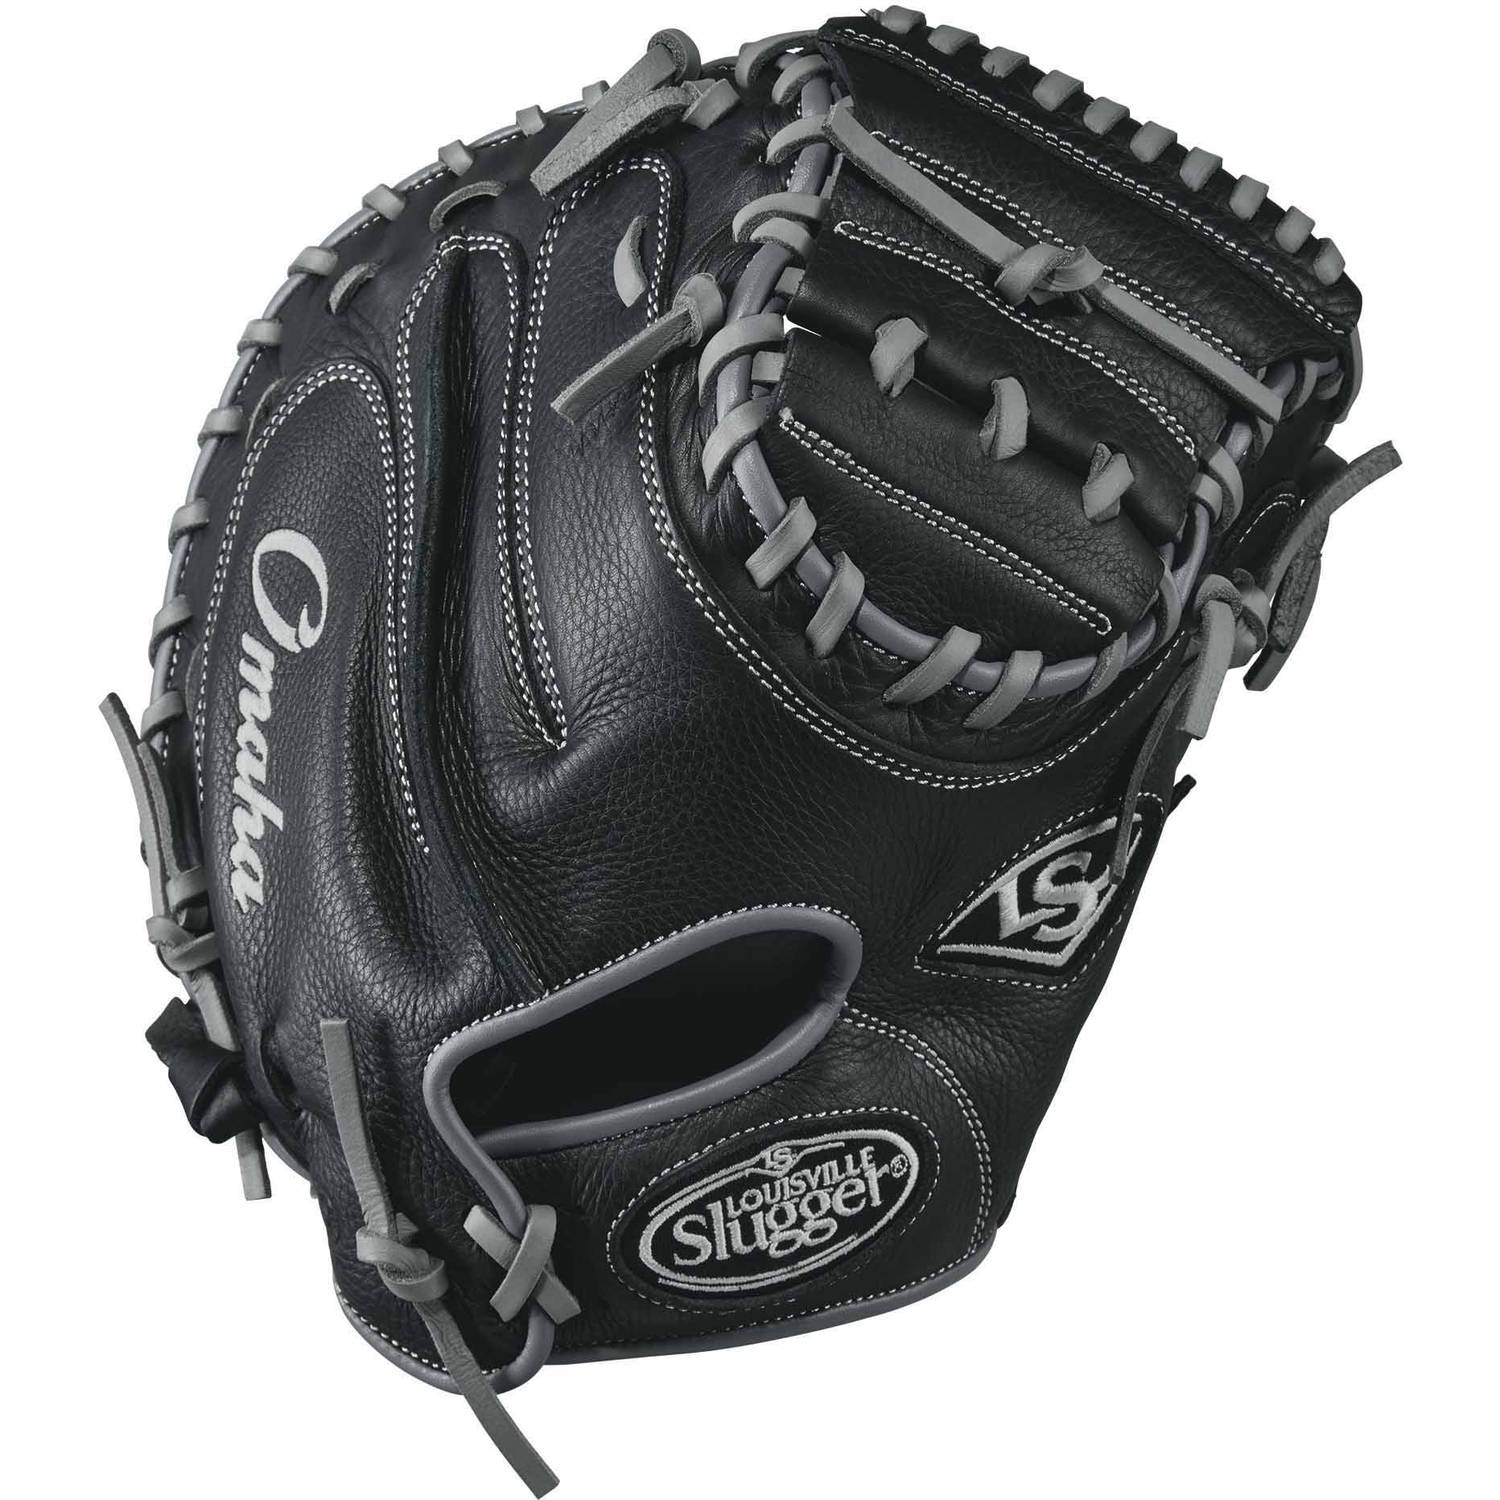 "Louisville Slugger Omaha Baseball Catchers Mitt, Right Hand Throw, 32"" by Louisville Slugger"